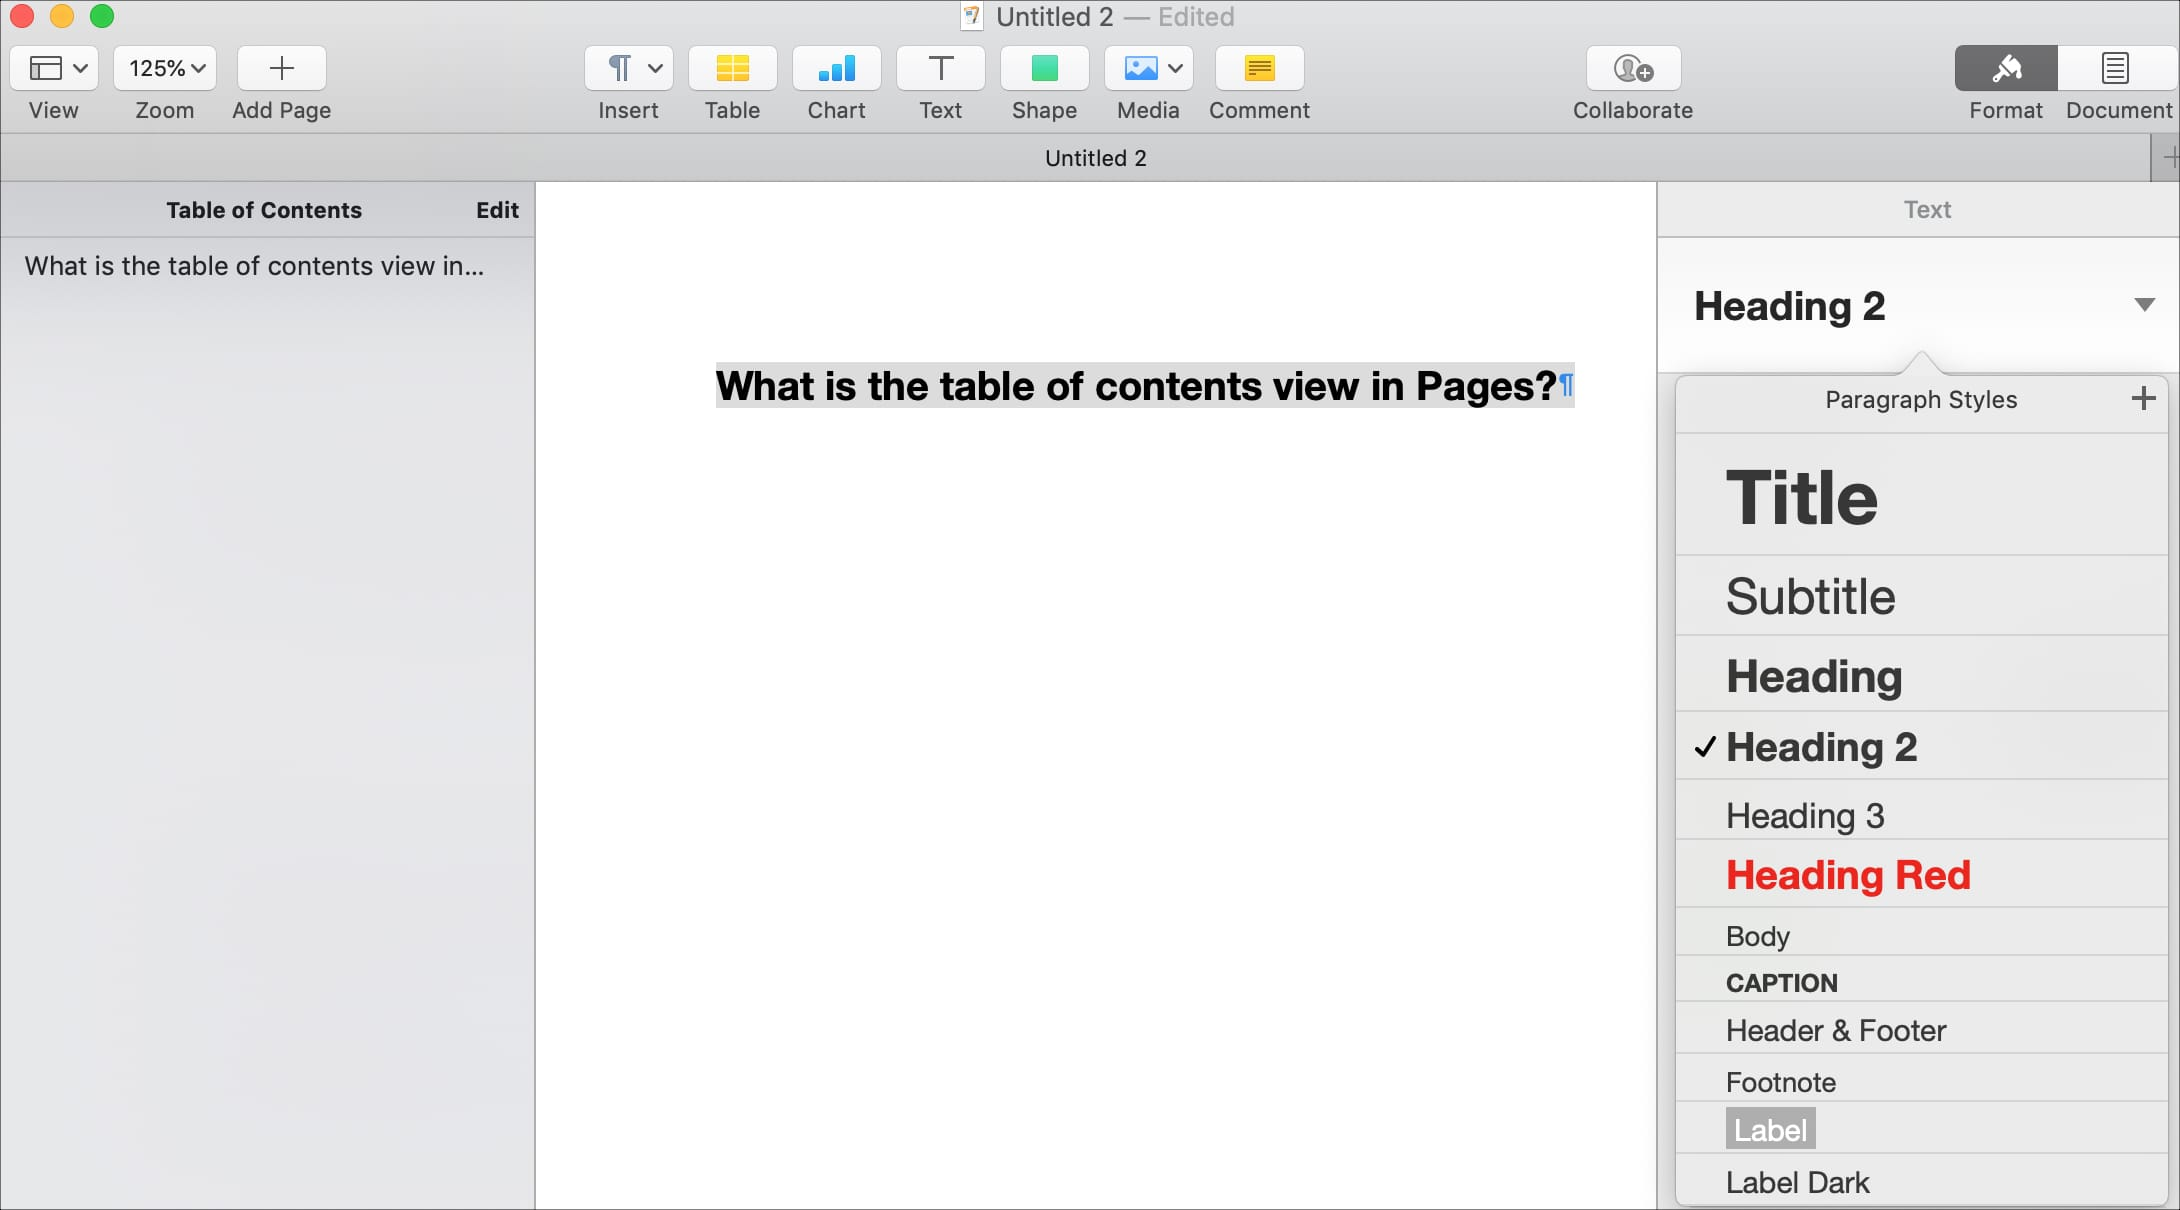 Change paragraph styles in Pages for the TOC